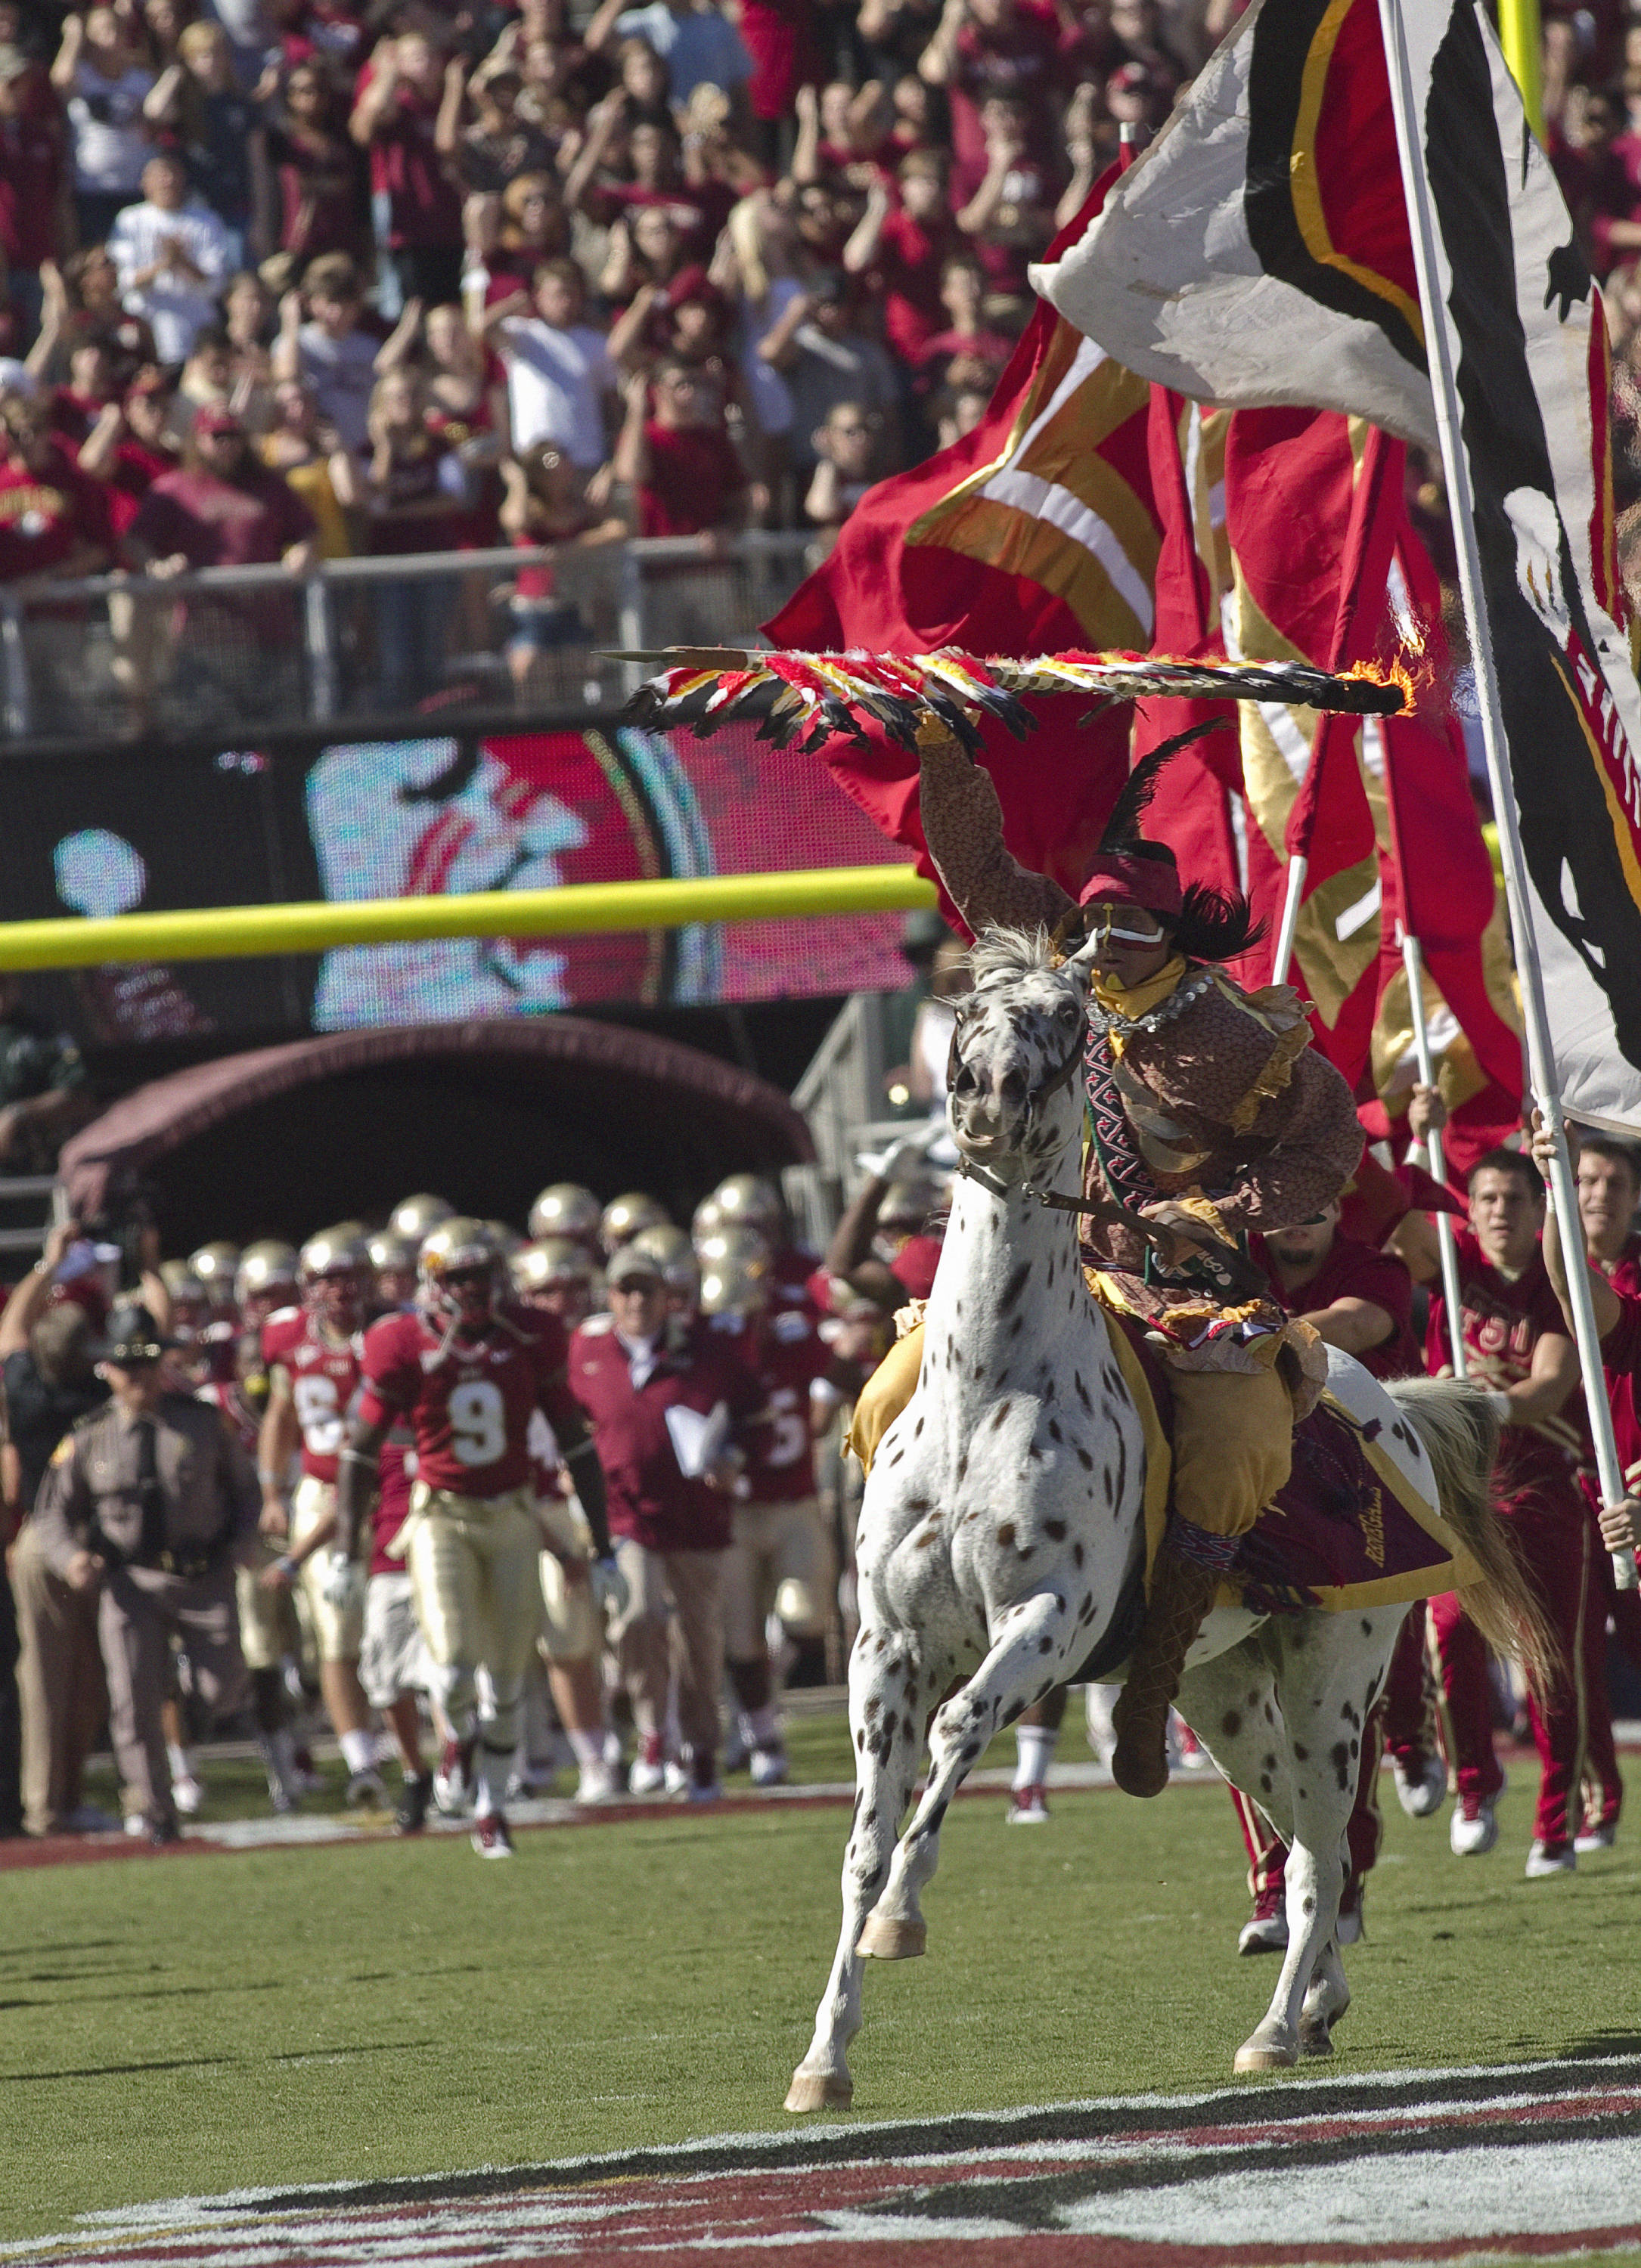 Chief Osceola and Renagade leading FSU out. FSU vs Maryland 10/22/1111